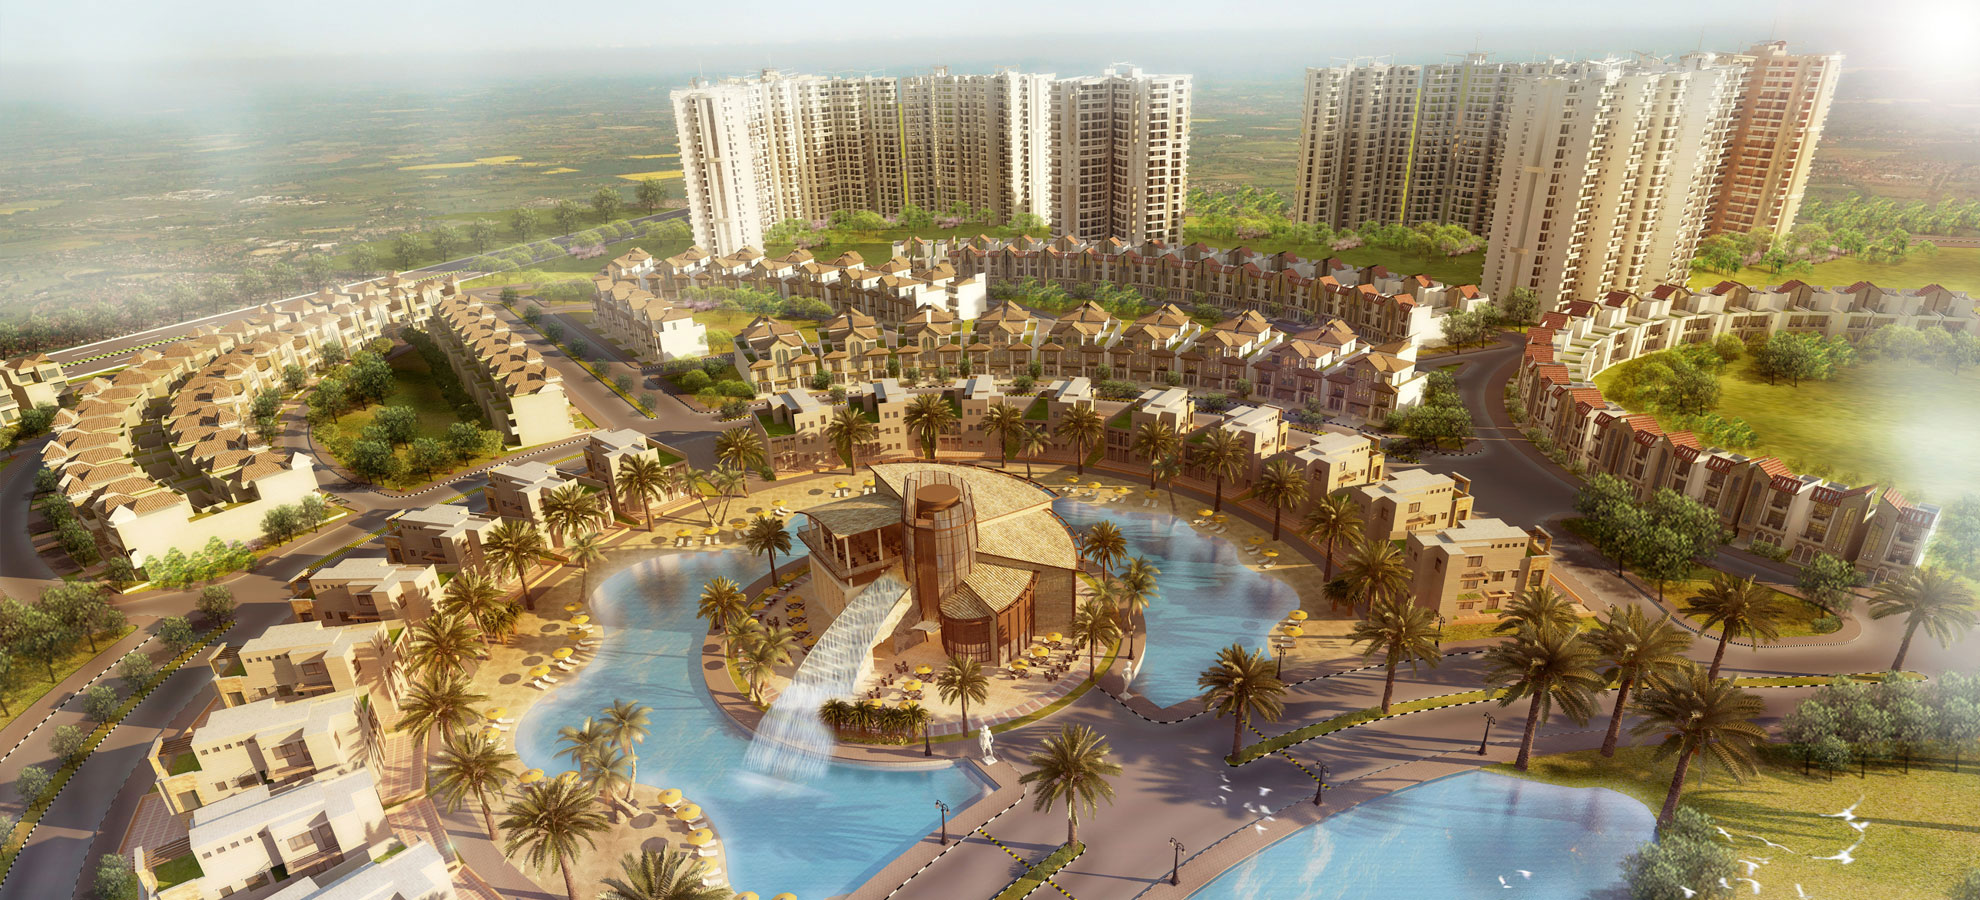 Supertech Up Country Villas Yamuna Expressway